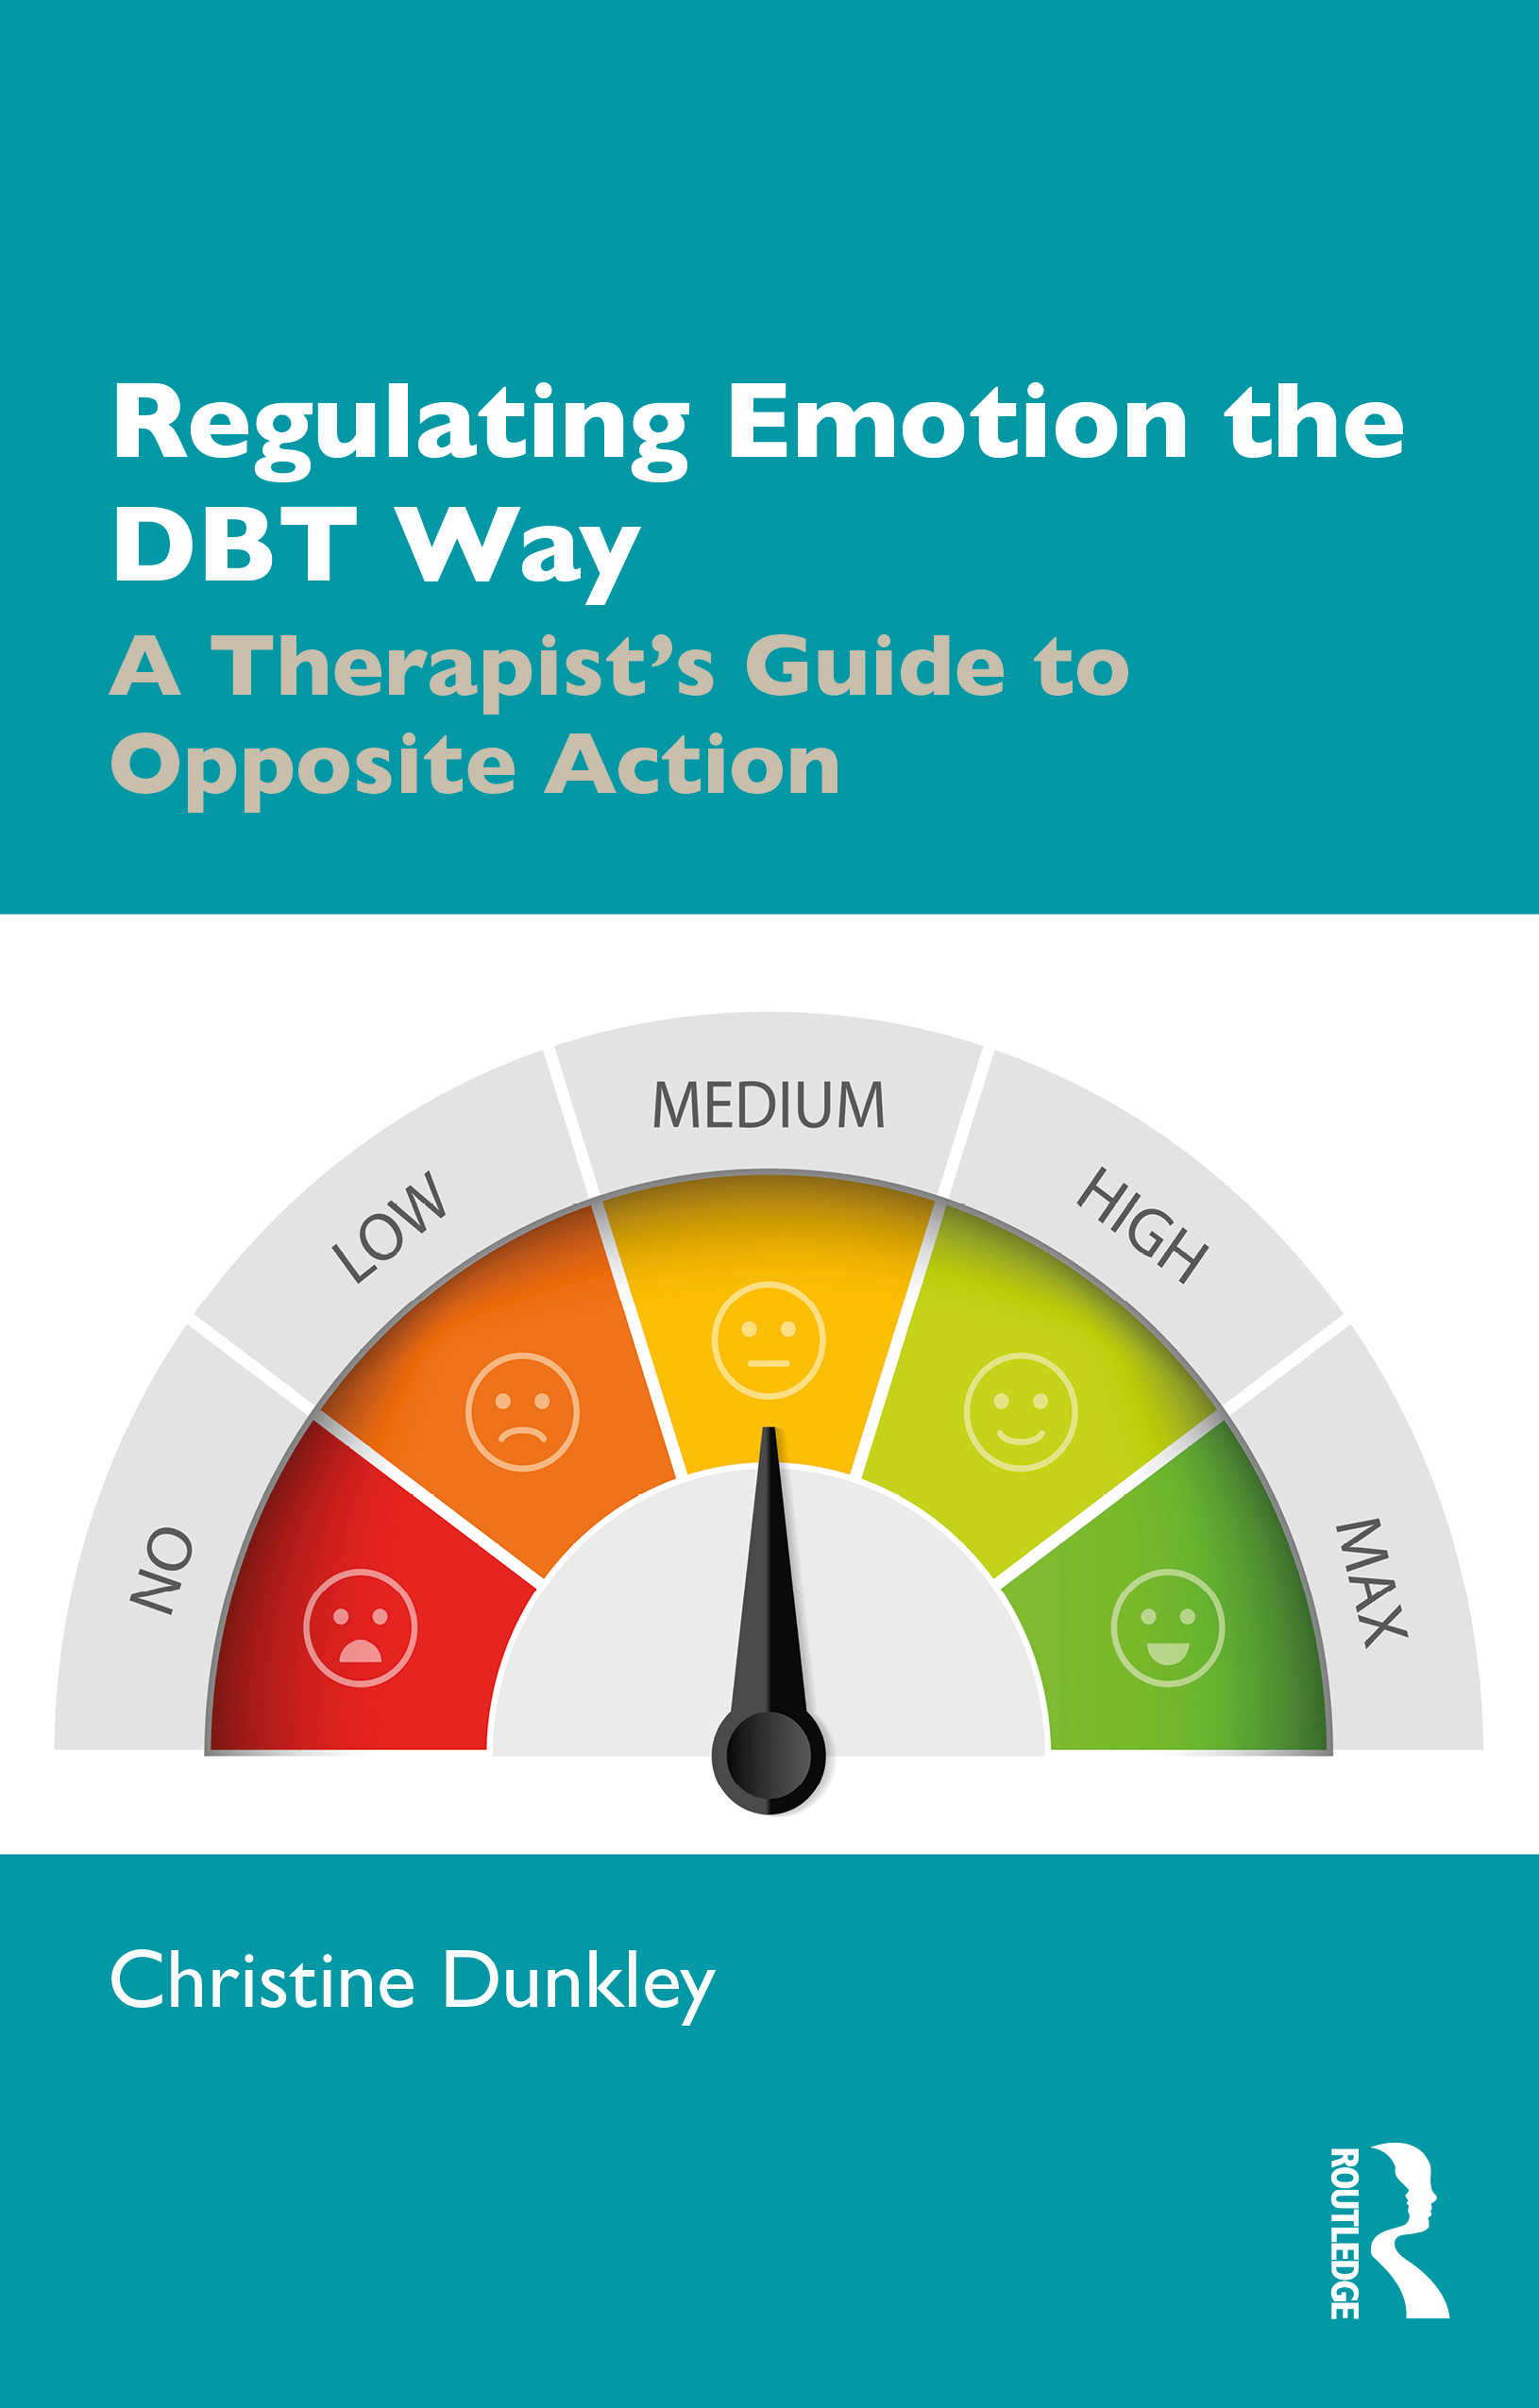 Regulating Emotion the DBT Way: A Therapist's Guide to Opposite Action book cover